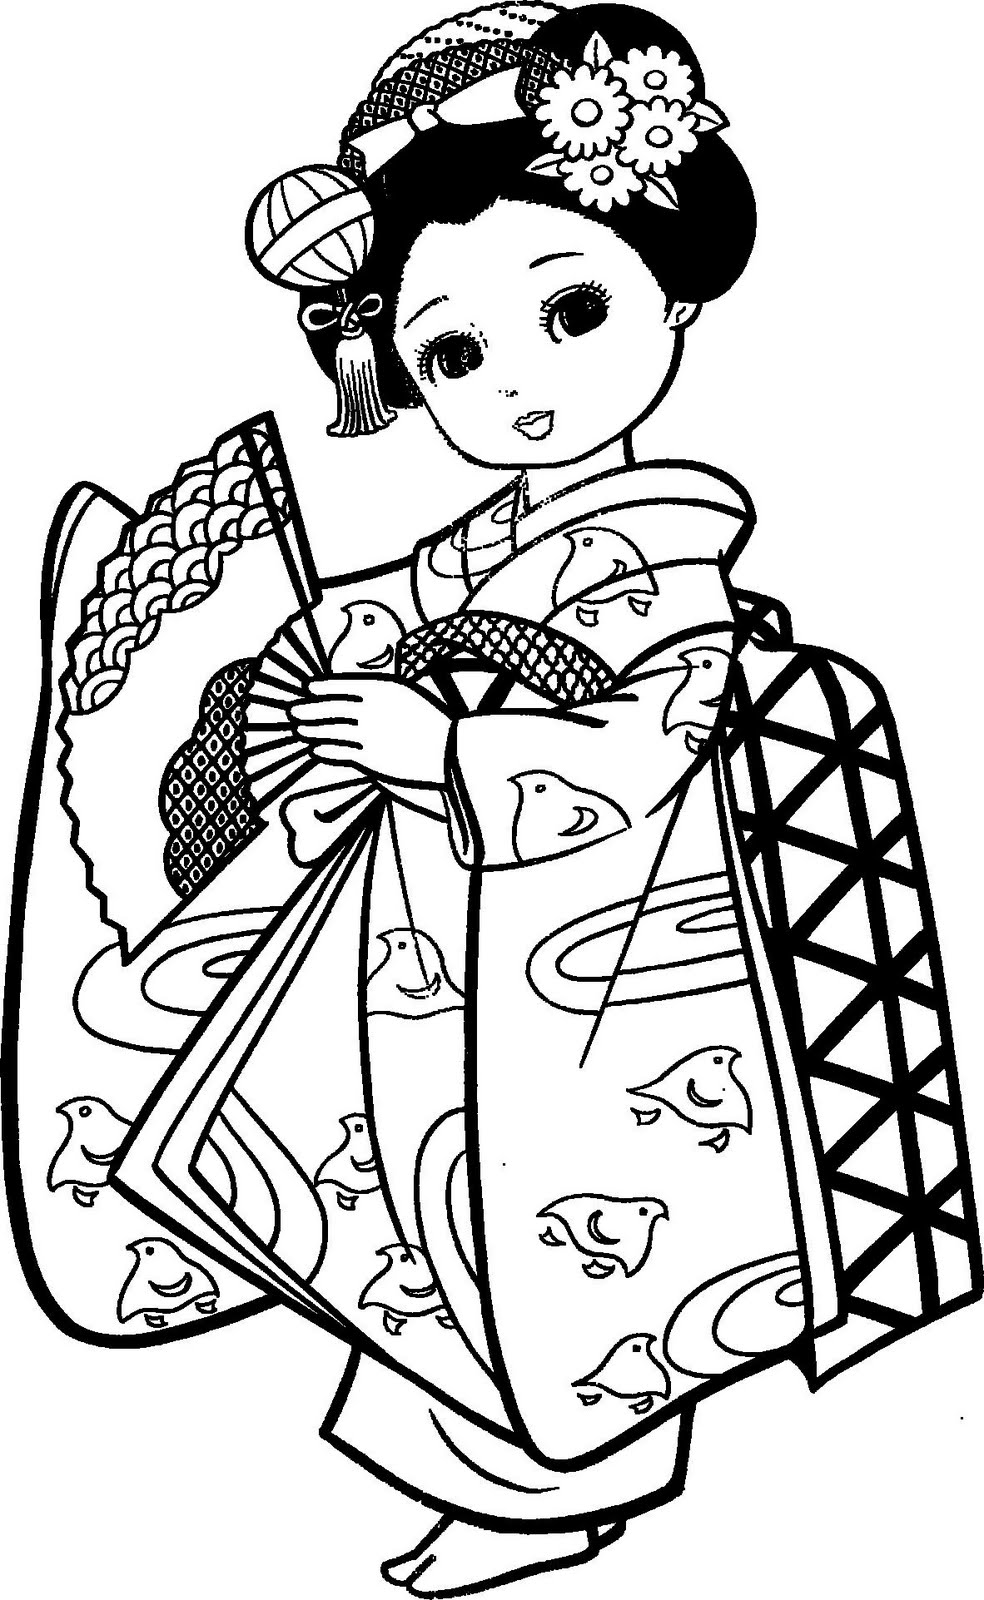 Geisha Kimono Coloring Pages Coloring Pages Geisha Coloring Pages